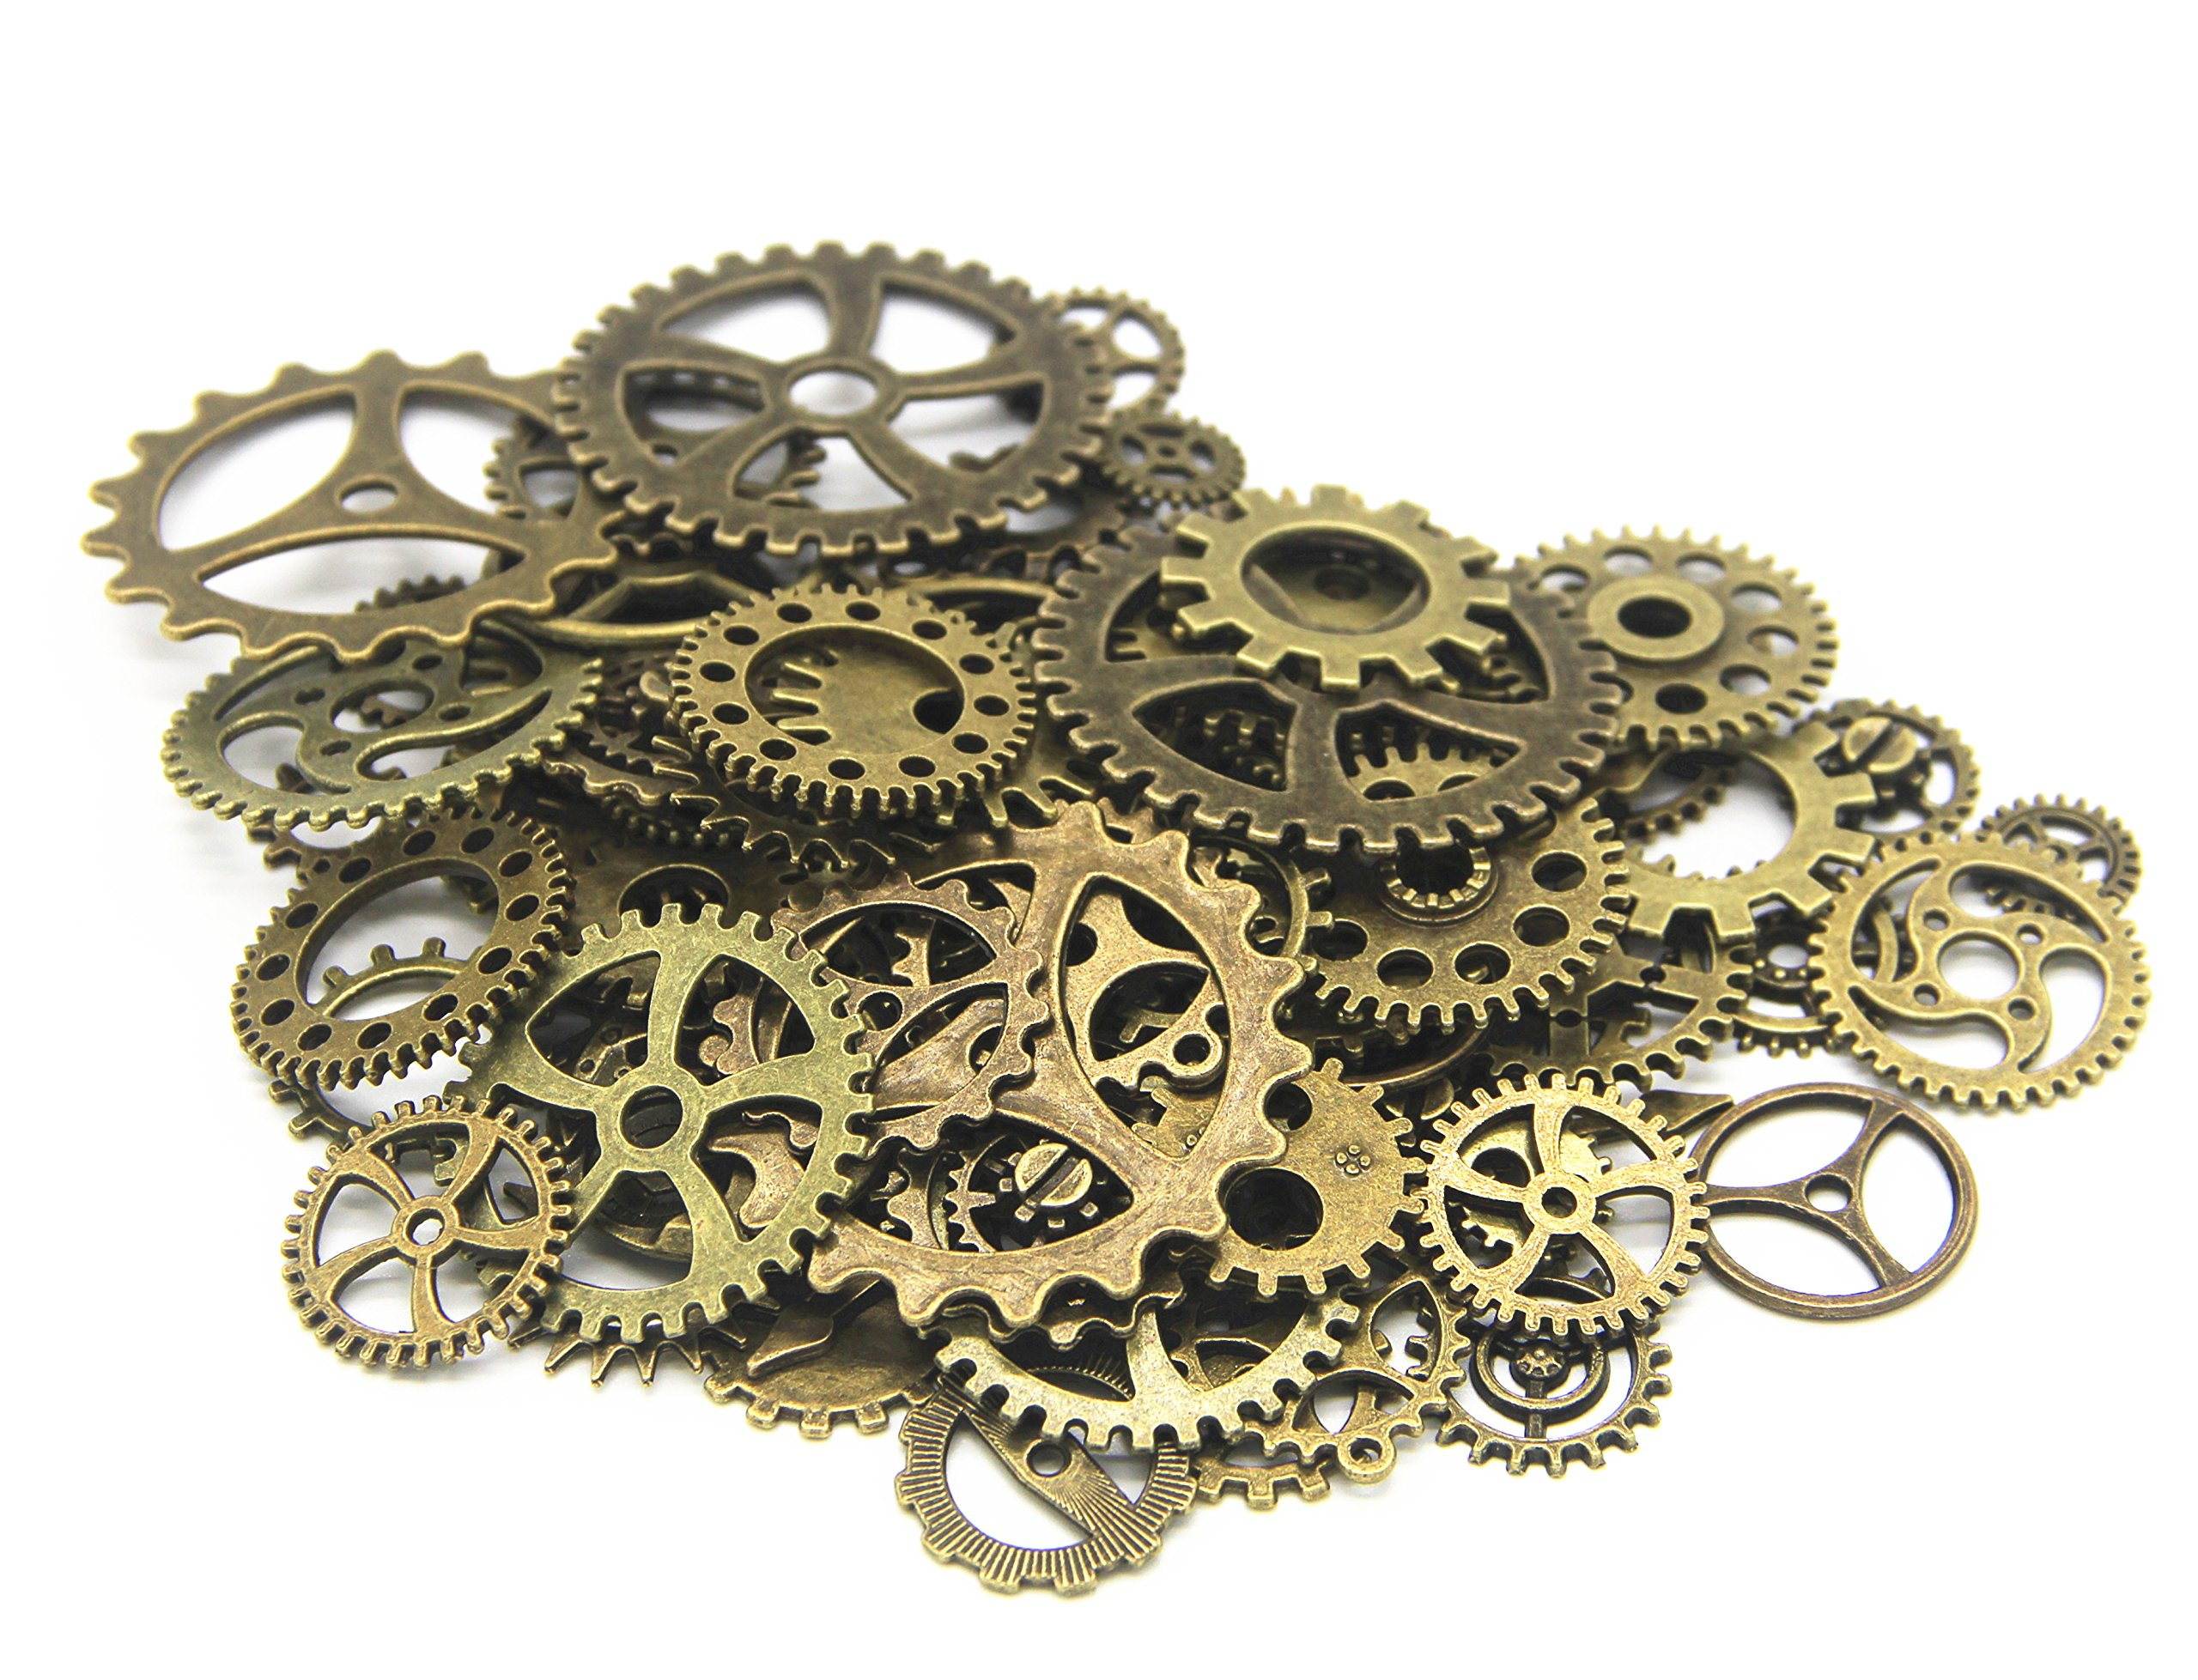 Cheap Plastic Gears And Cogs, find Plastic Gears And Cogs deals on